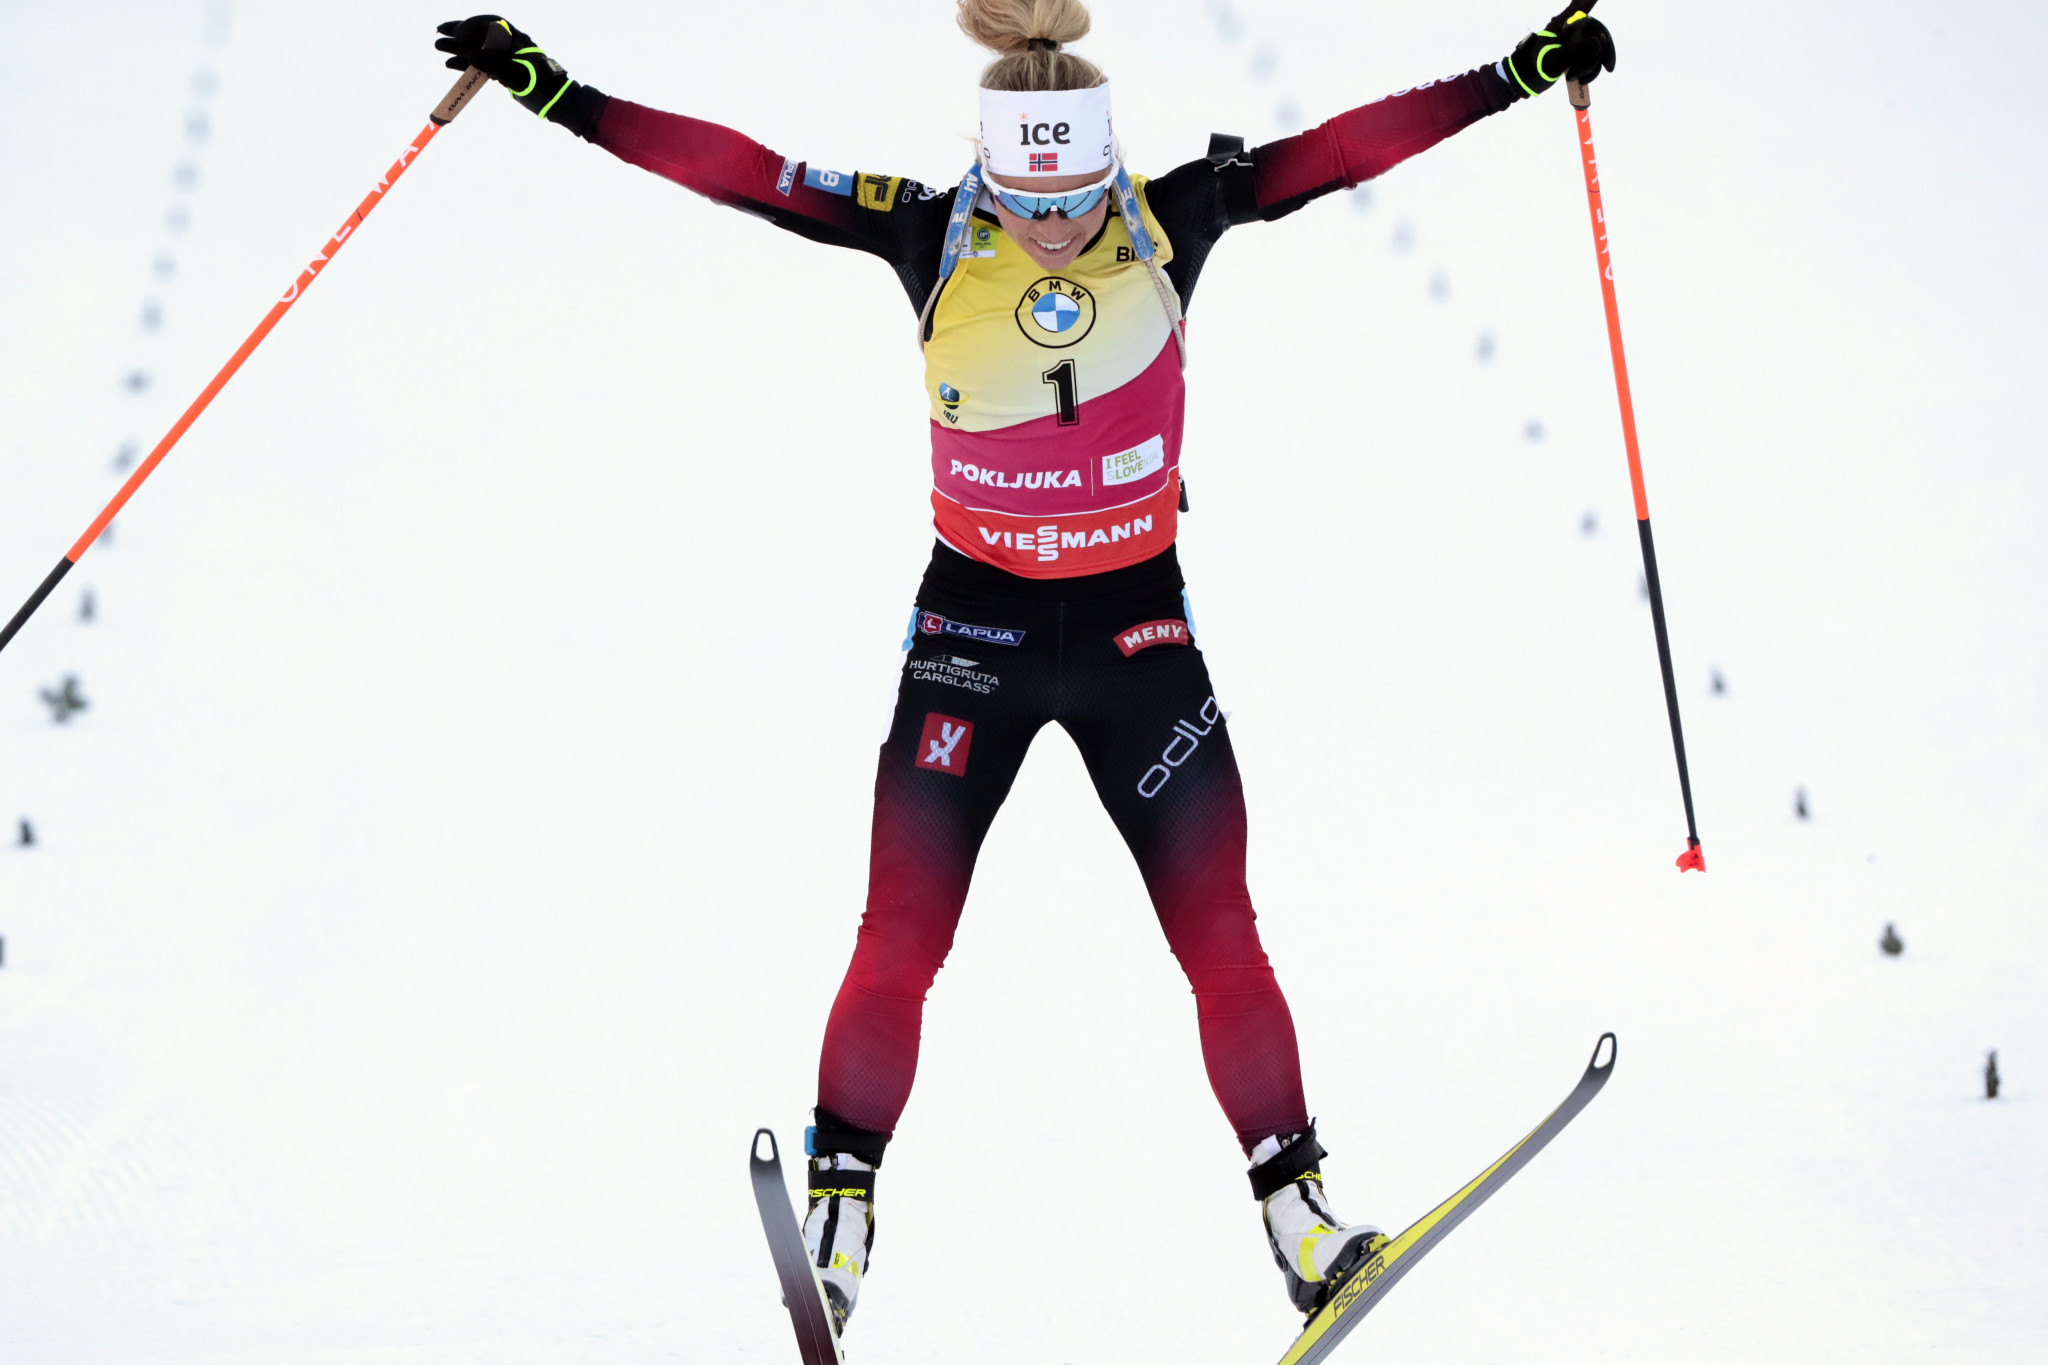 Eckhoff prevails in pursuit for third gold at IBU World Championships